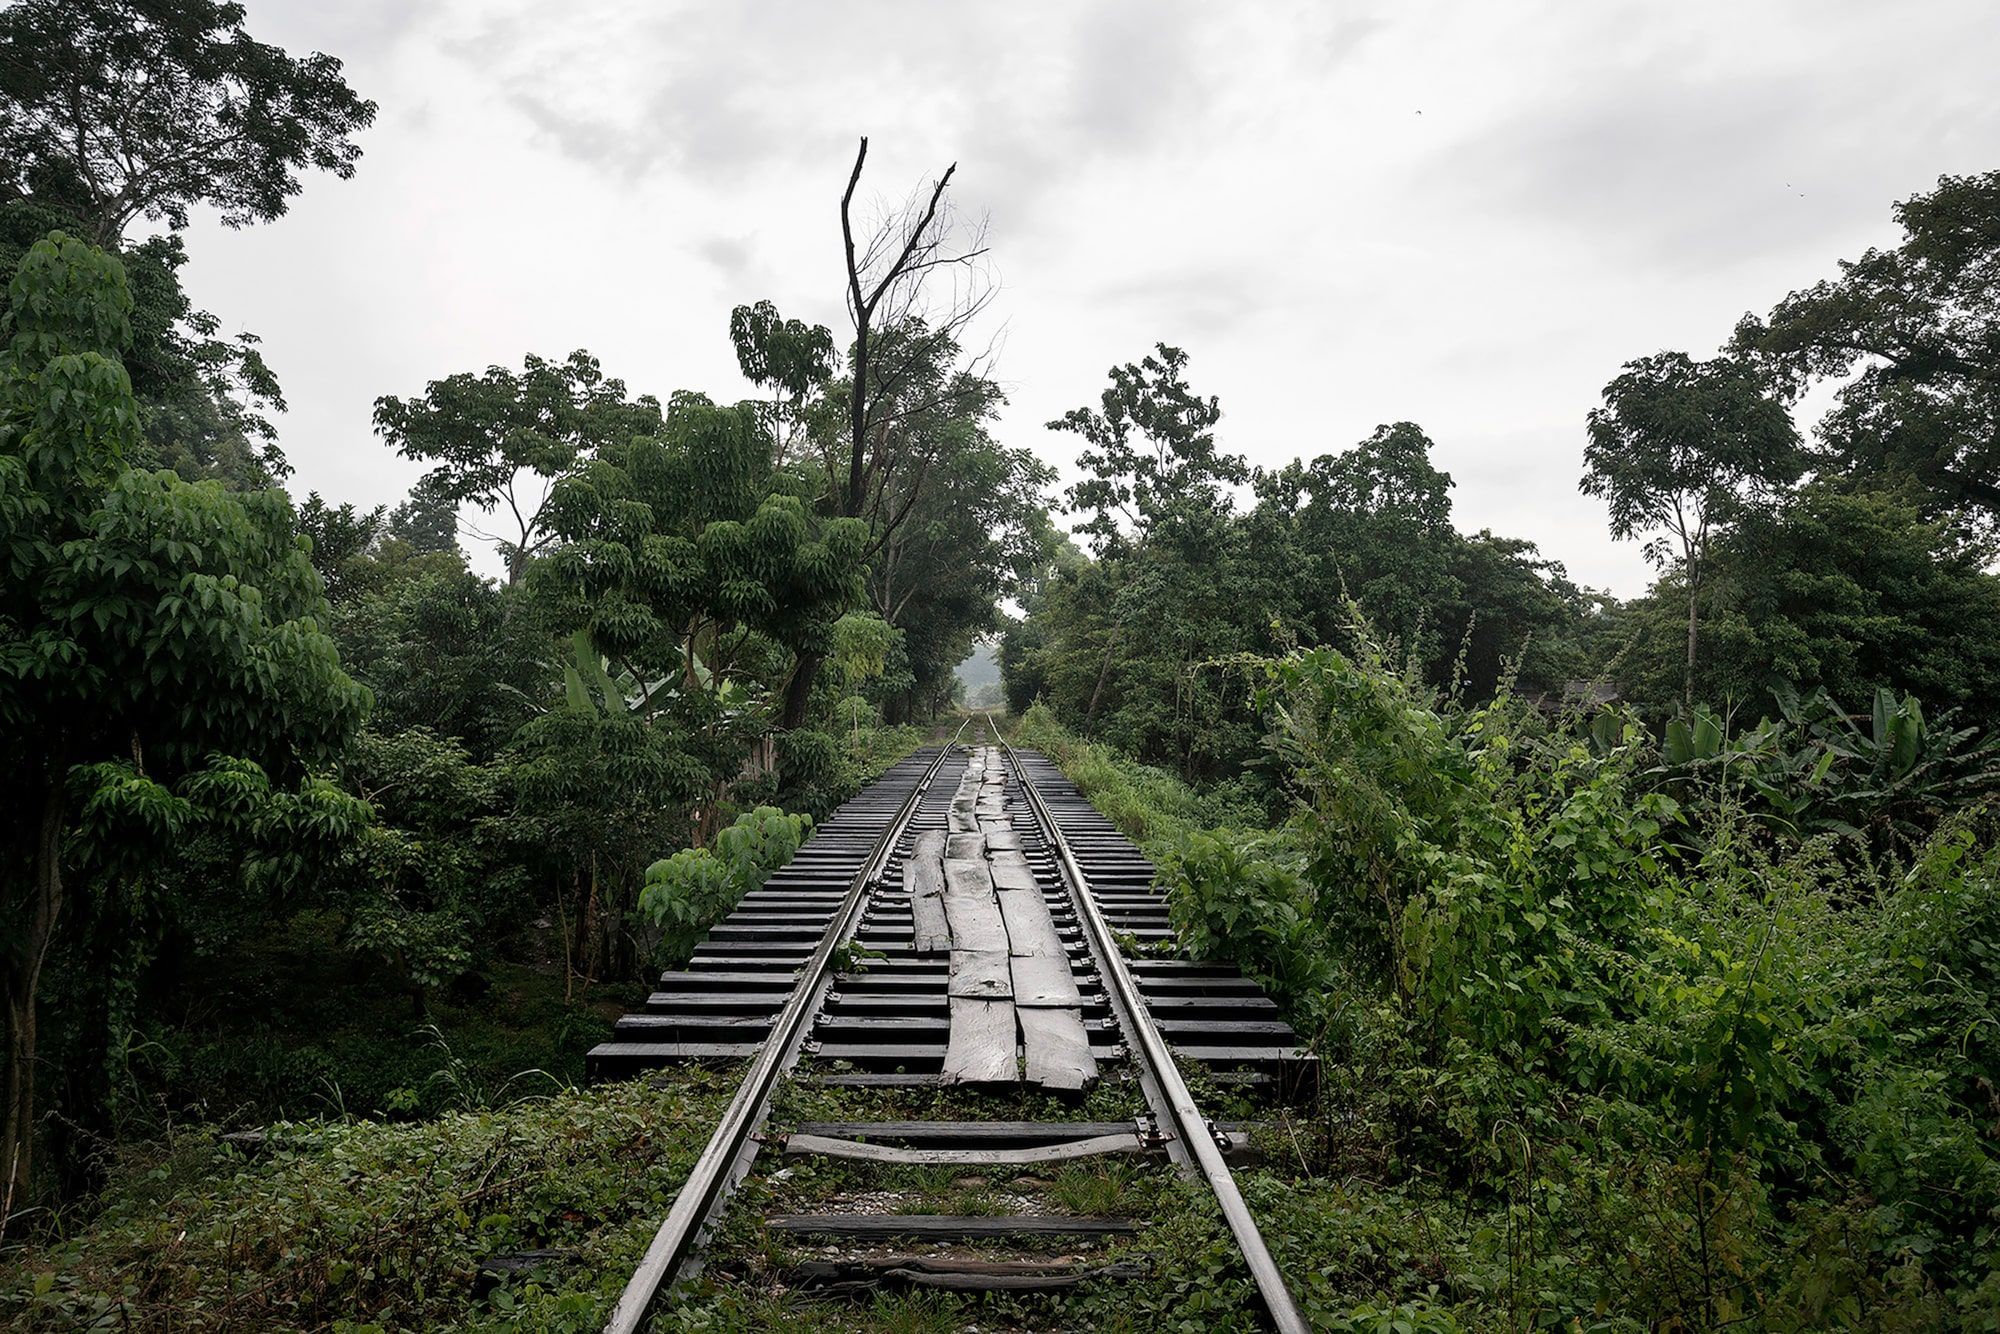 alessandro-grassini-sony-alpha-7RII-chiapas-mexico-migrants-follow-the-train-tracks-to-the-united-states